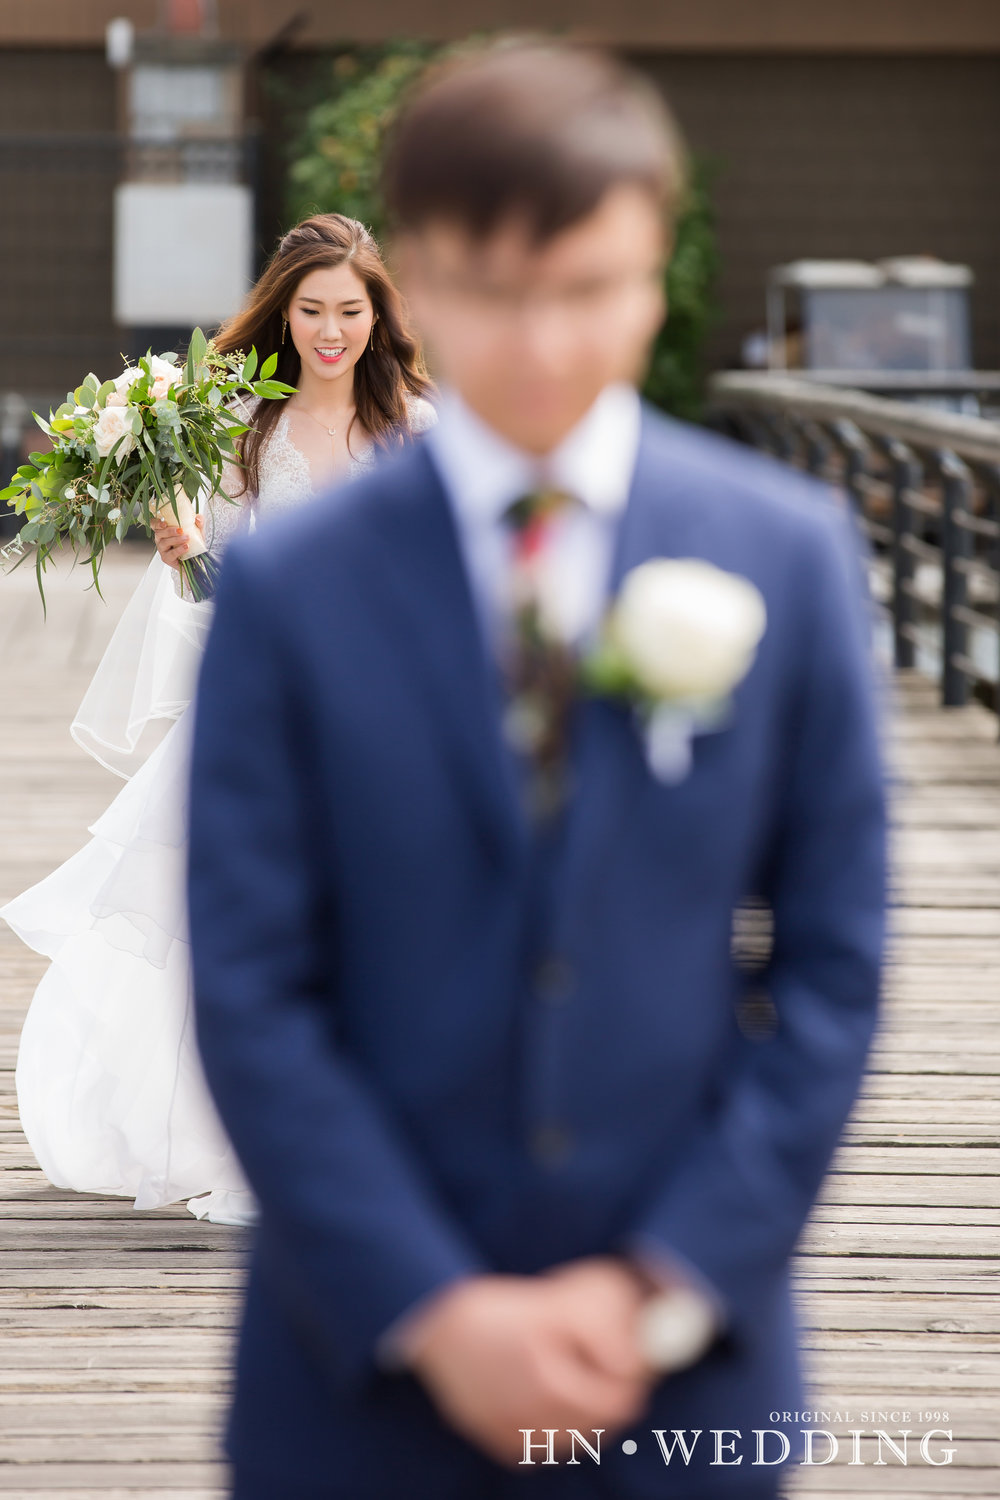 hnwedding20170709weddingday--10.jpg